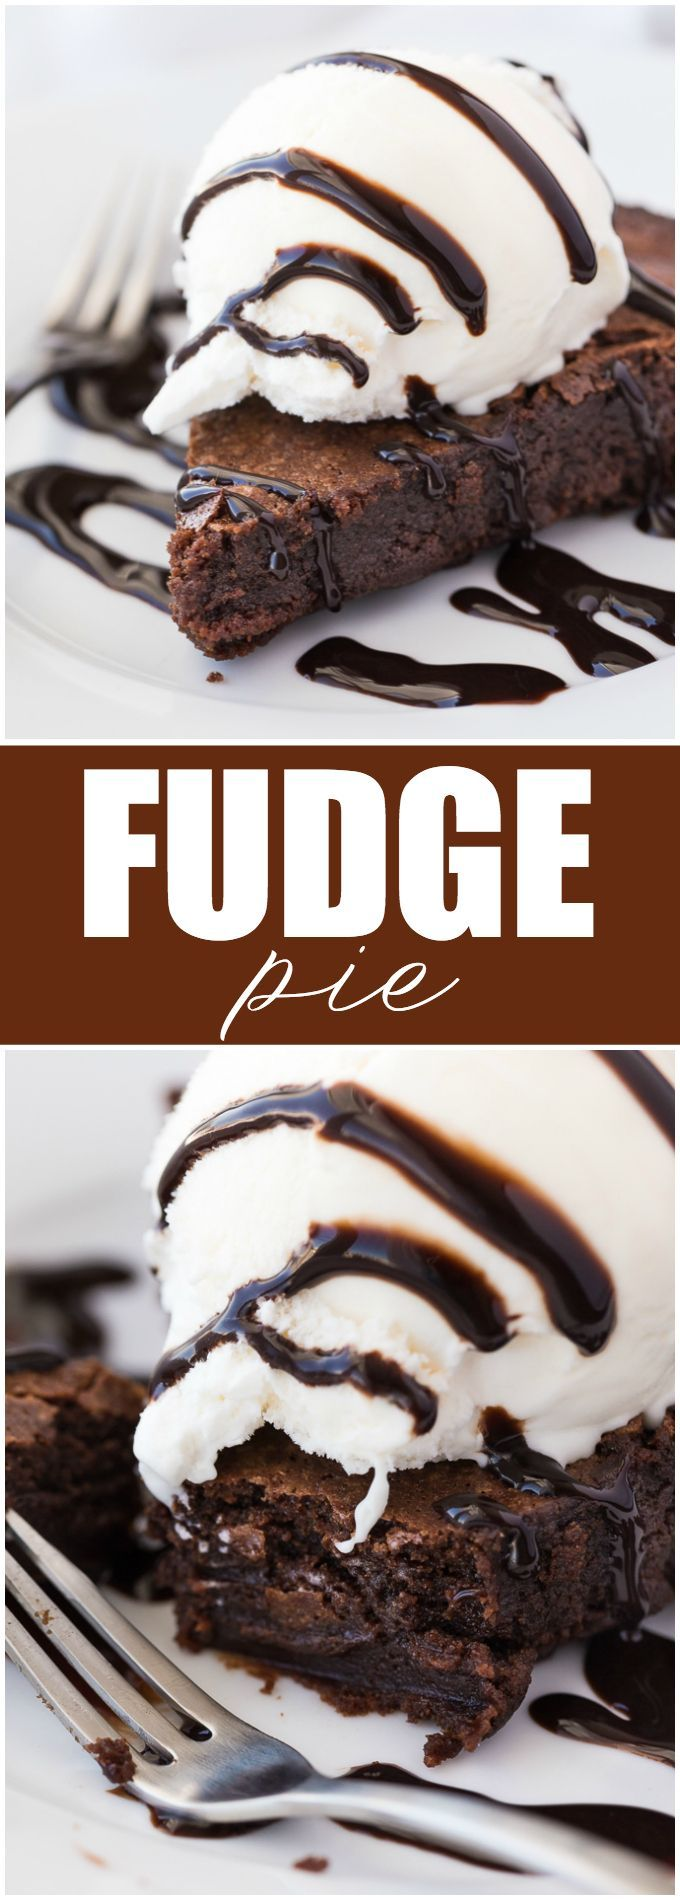 Fudge Pie - Each bite is sweet, chewy and full of luscious chocolate flavour. Serve each piece with some vanilla ice cream and chocolate sauce for a special dessert.